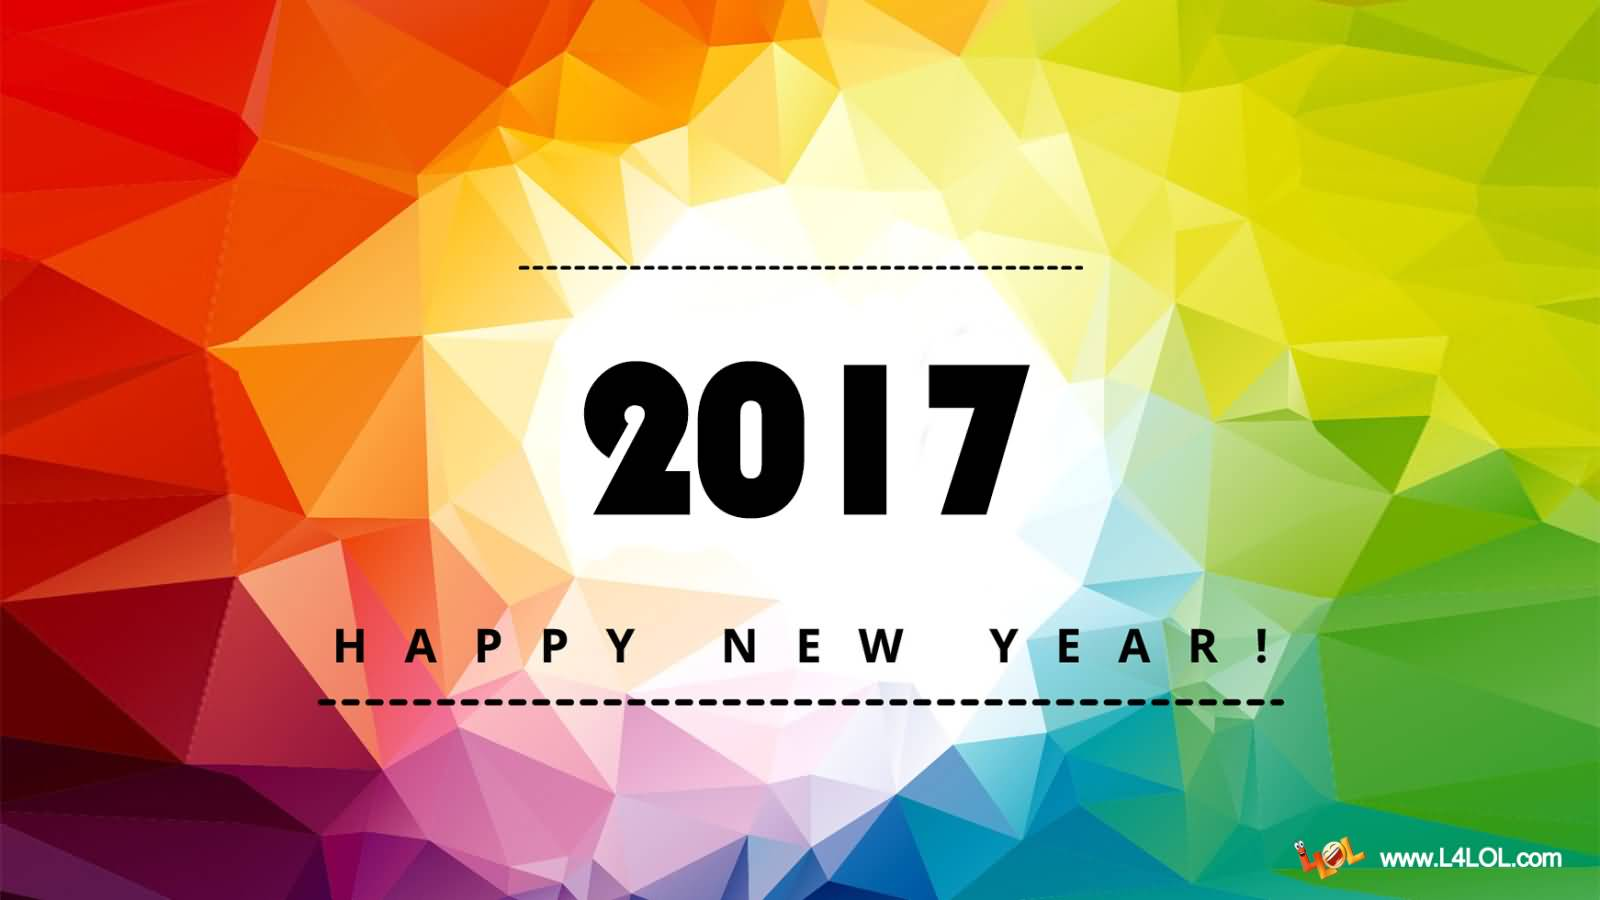 2017 happy new year wishes wallpaper